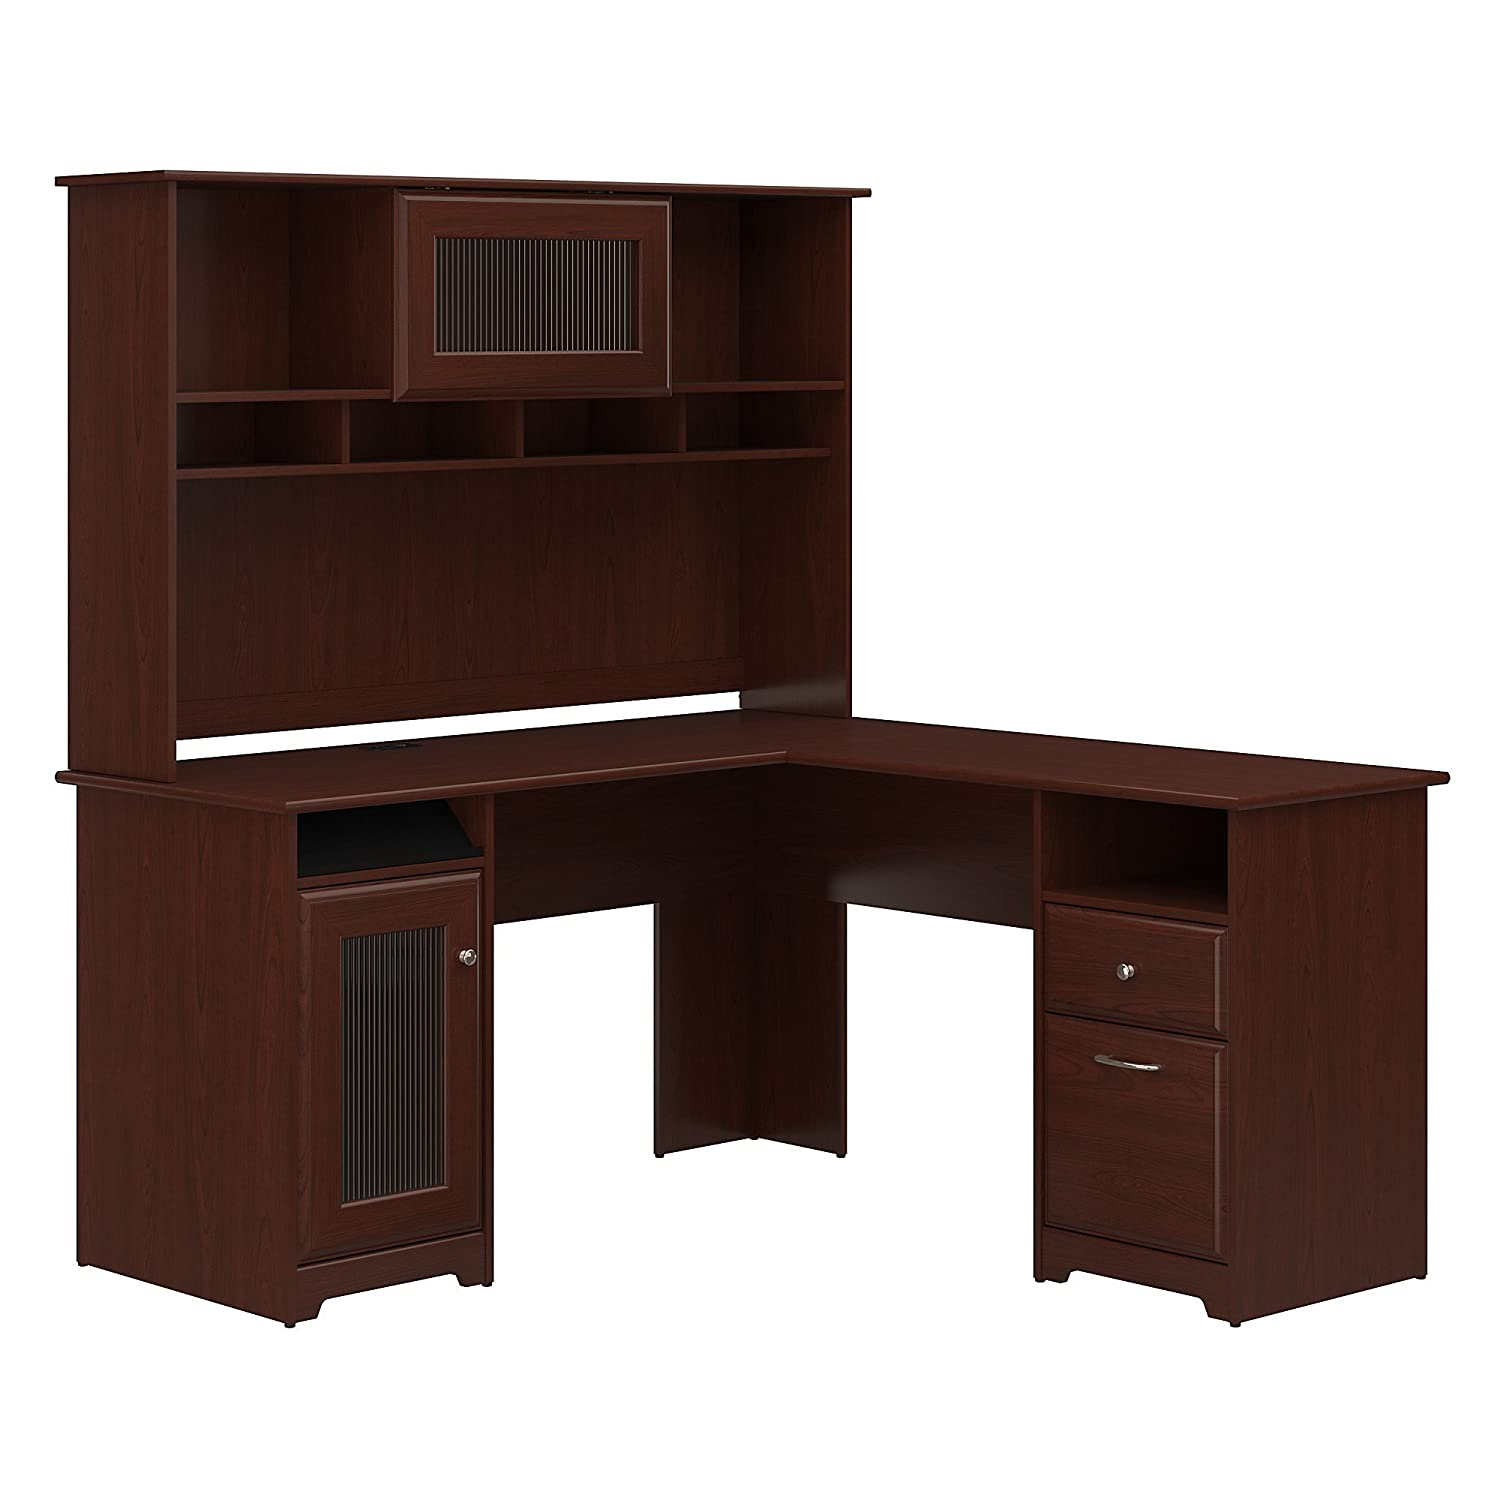 Advantages Of White Desk Hutch Furnishings Amazon.com: Bush Furniture Cabot L Shaped Desk with Hutch in Harvest  Cherry: Kitchen u0026 Dining